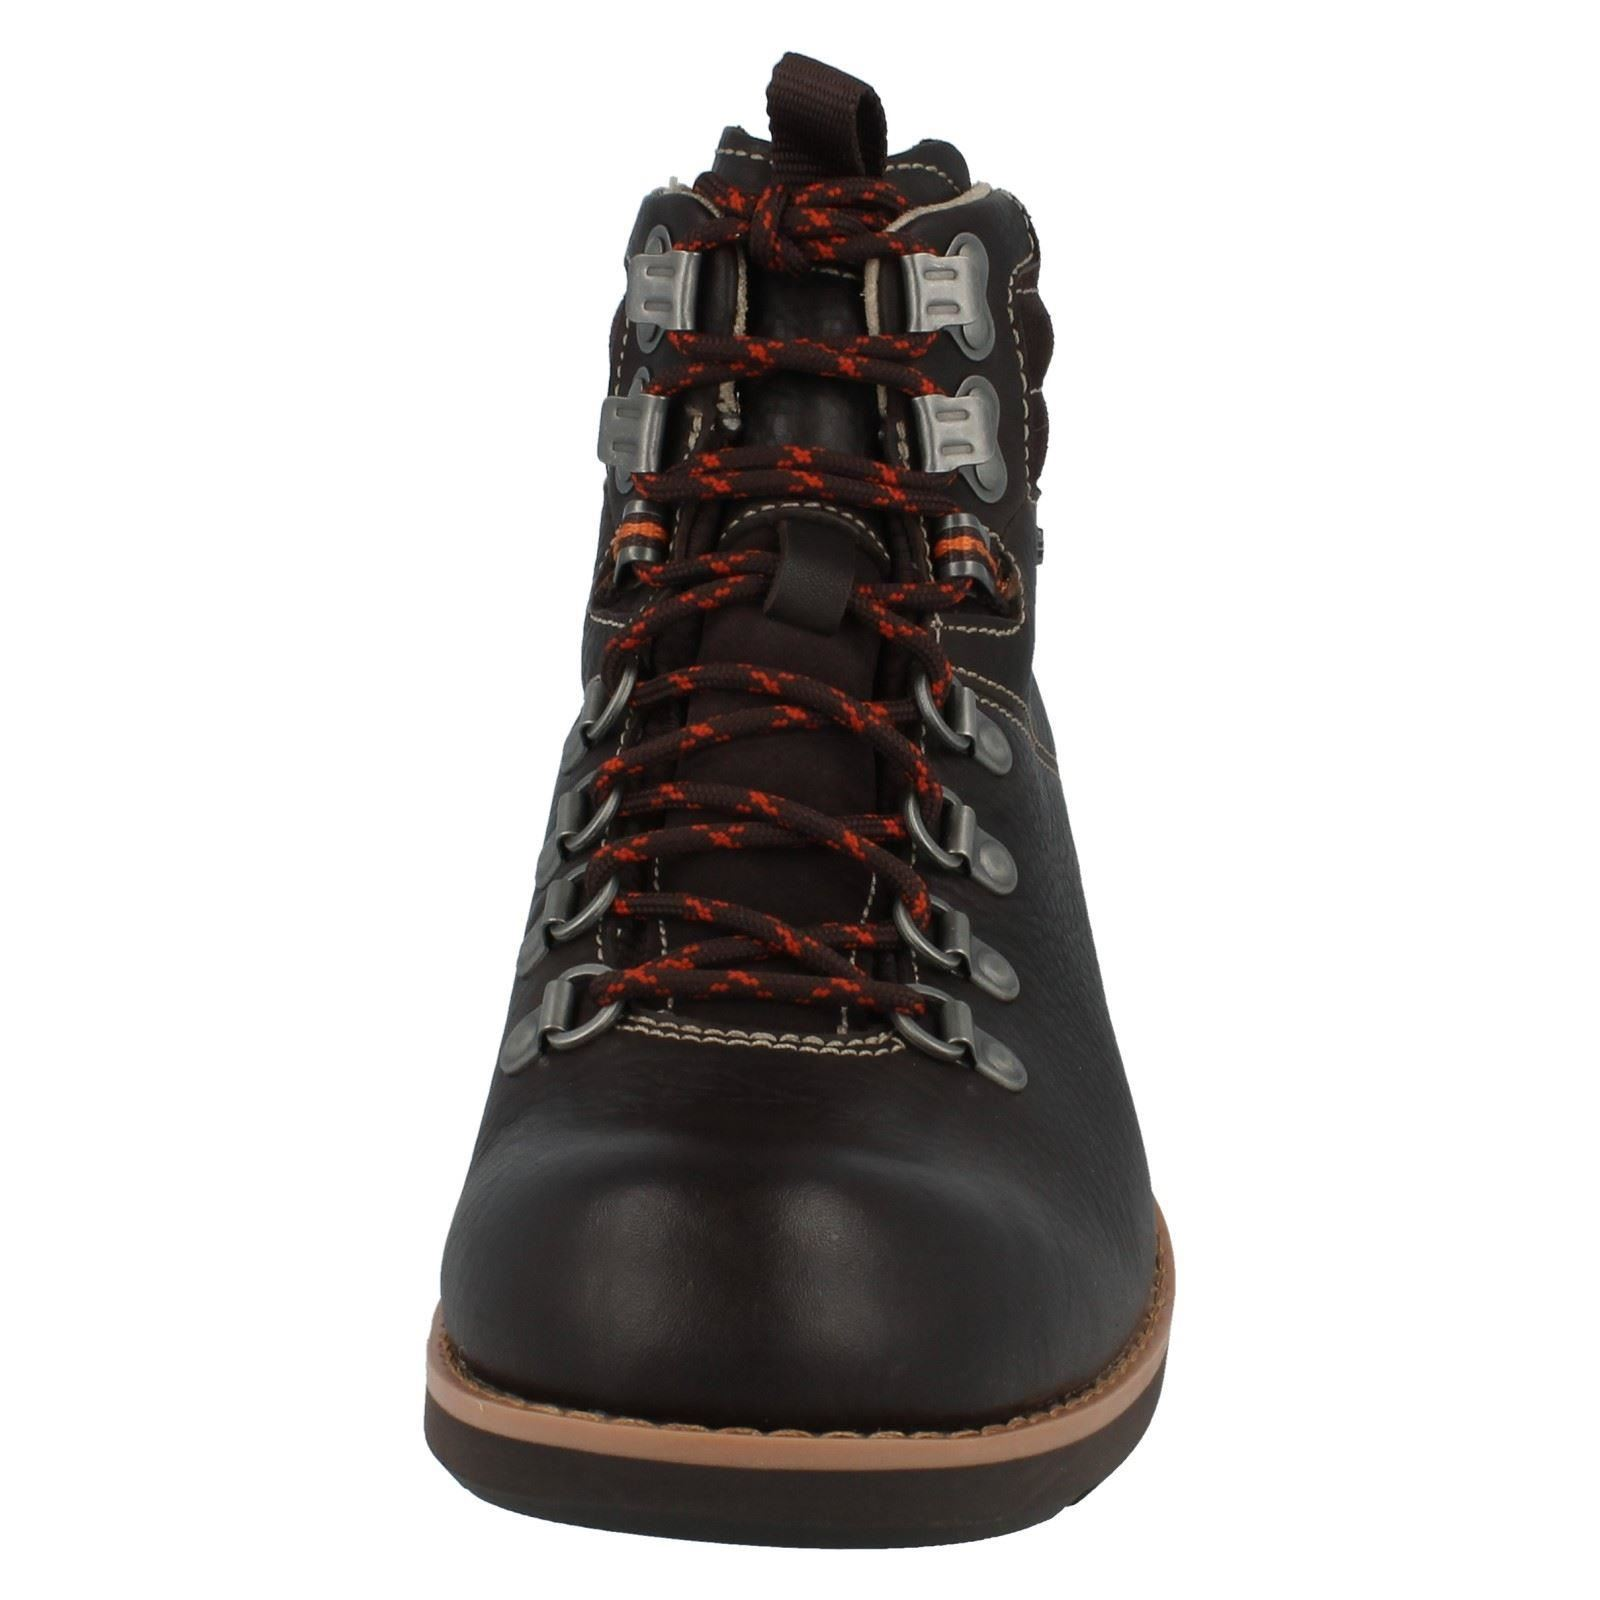 Men's Clarks Clarks Clarks Ankle Boots The Style - Padley Alp GTX fac22c